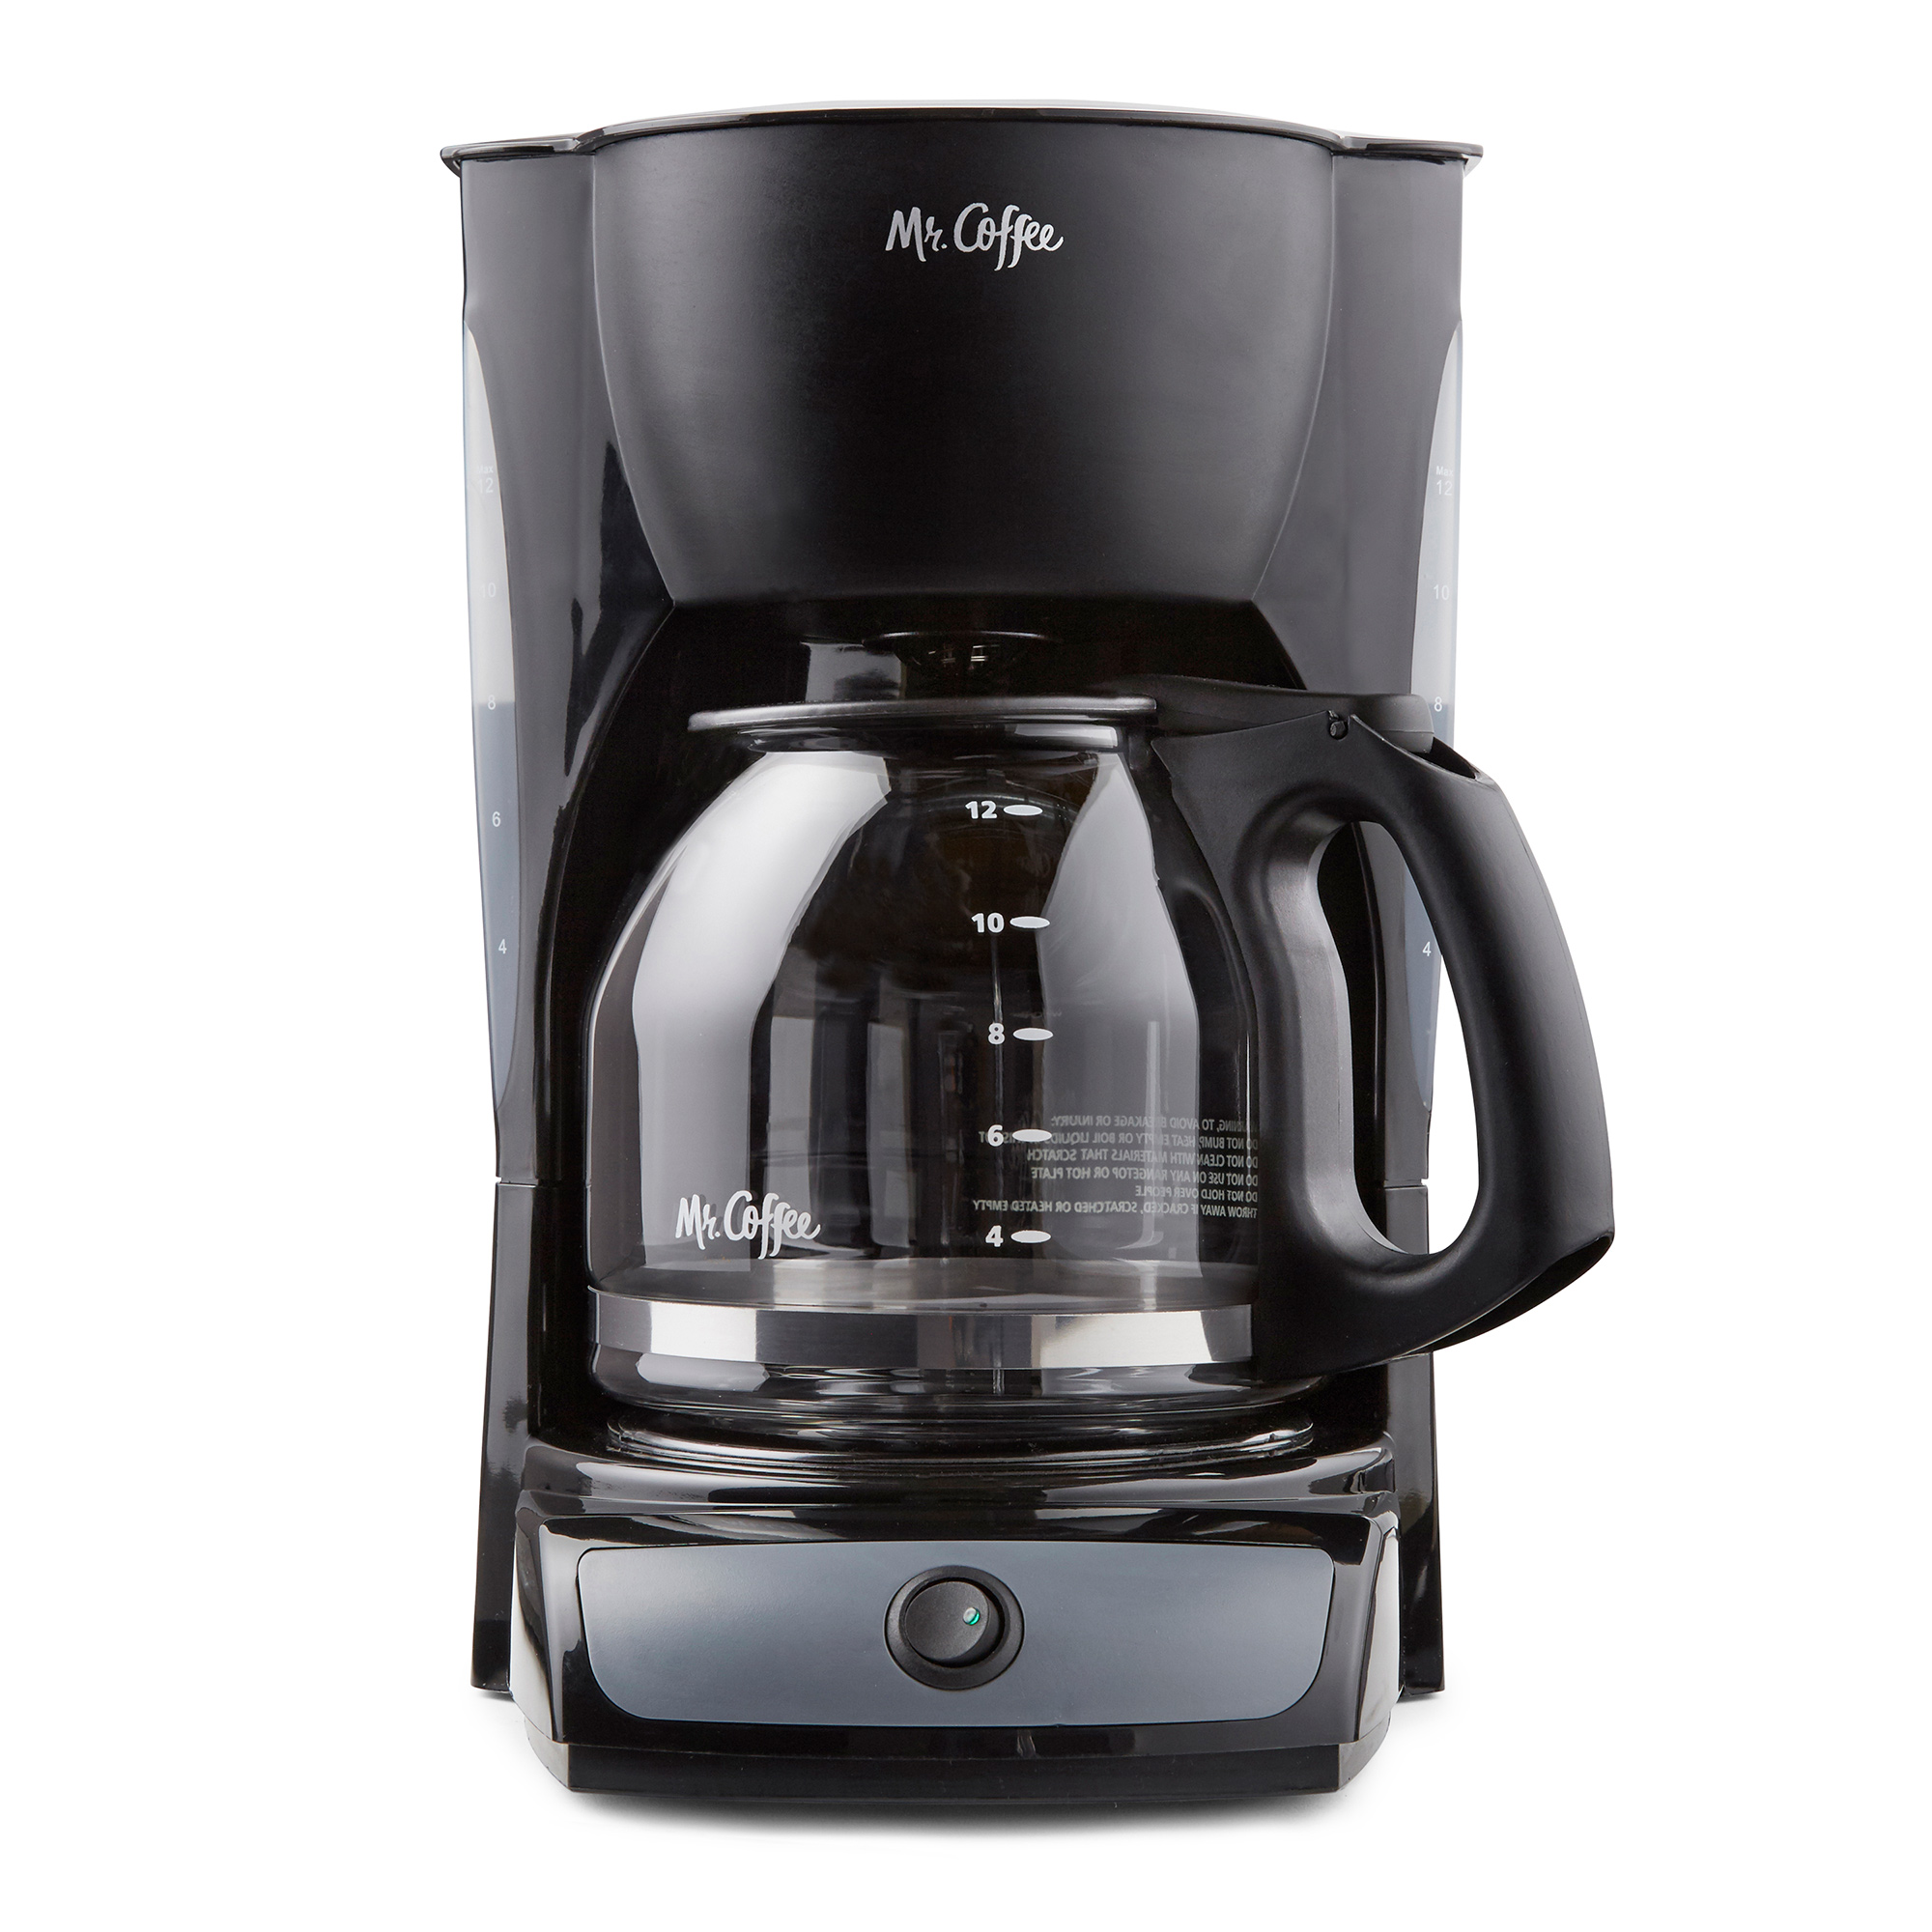 Mr. Coffee 12-Cup Switch Coffee Maker, Black (CG13)